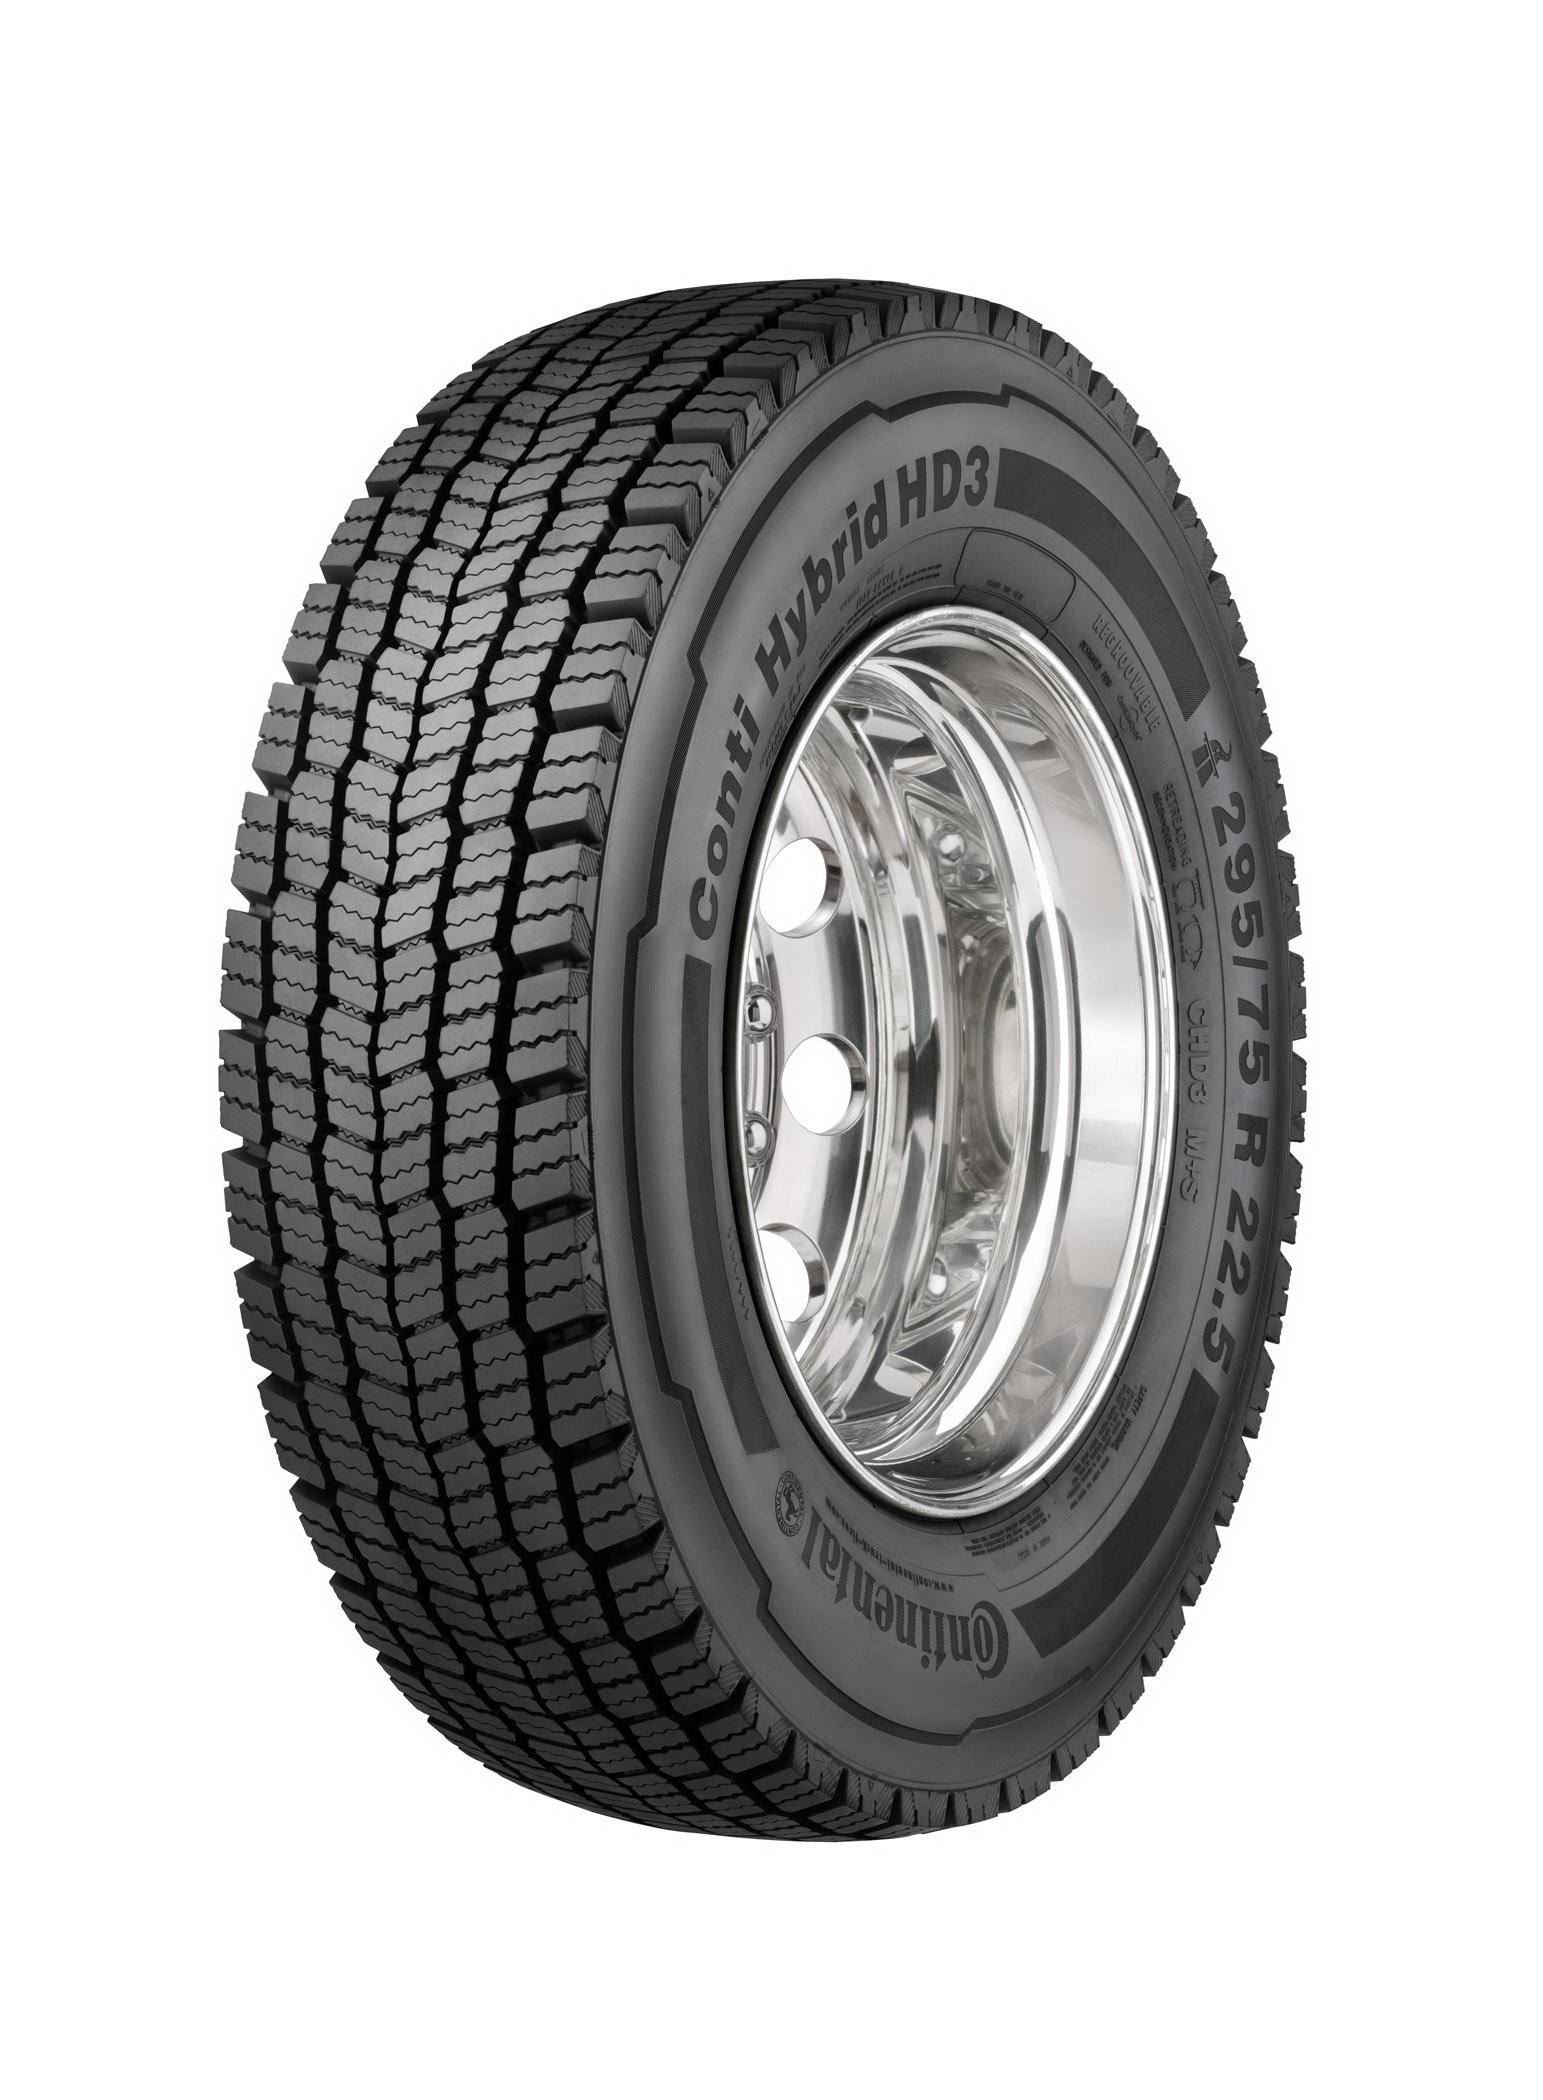 Anvelope tractiune CONTINENTAL CHD3 225/75 R17.5 129/127M